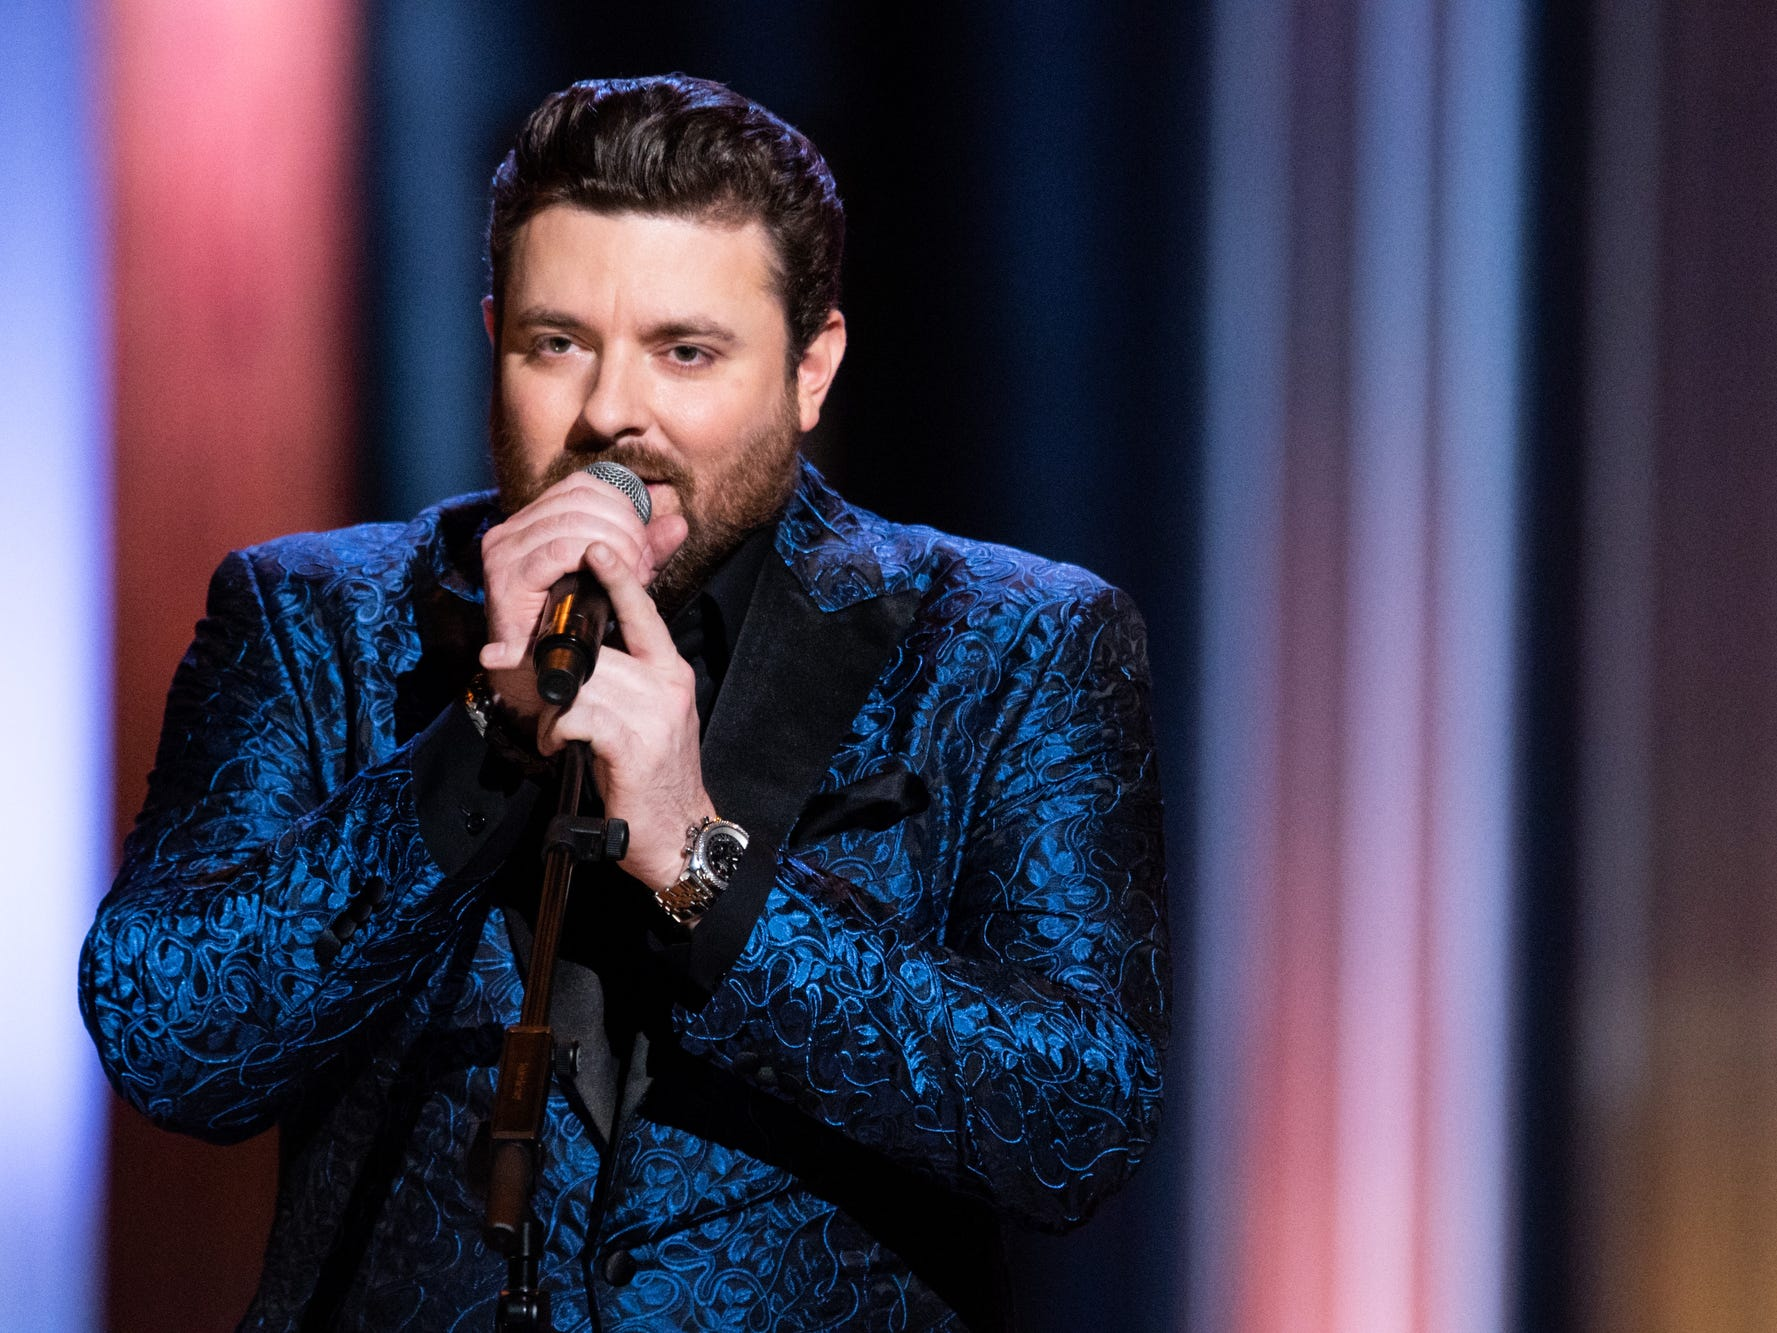 Dec. 14